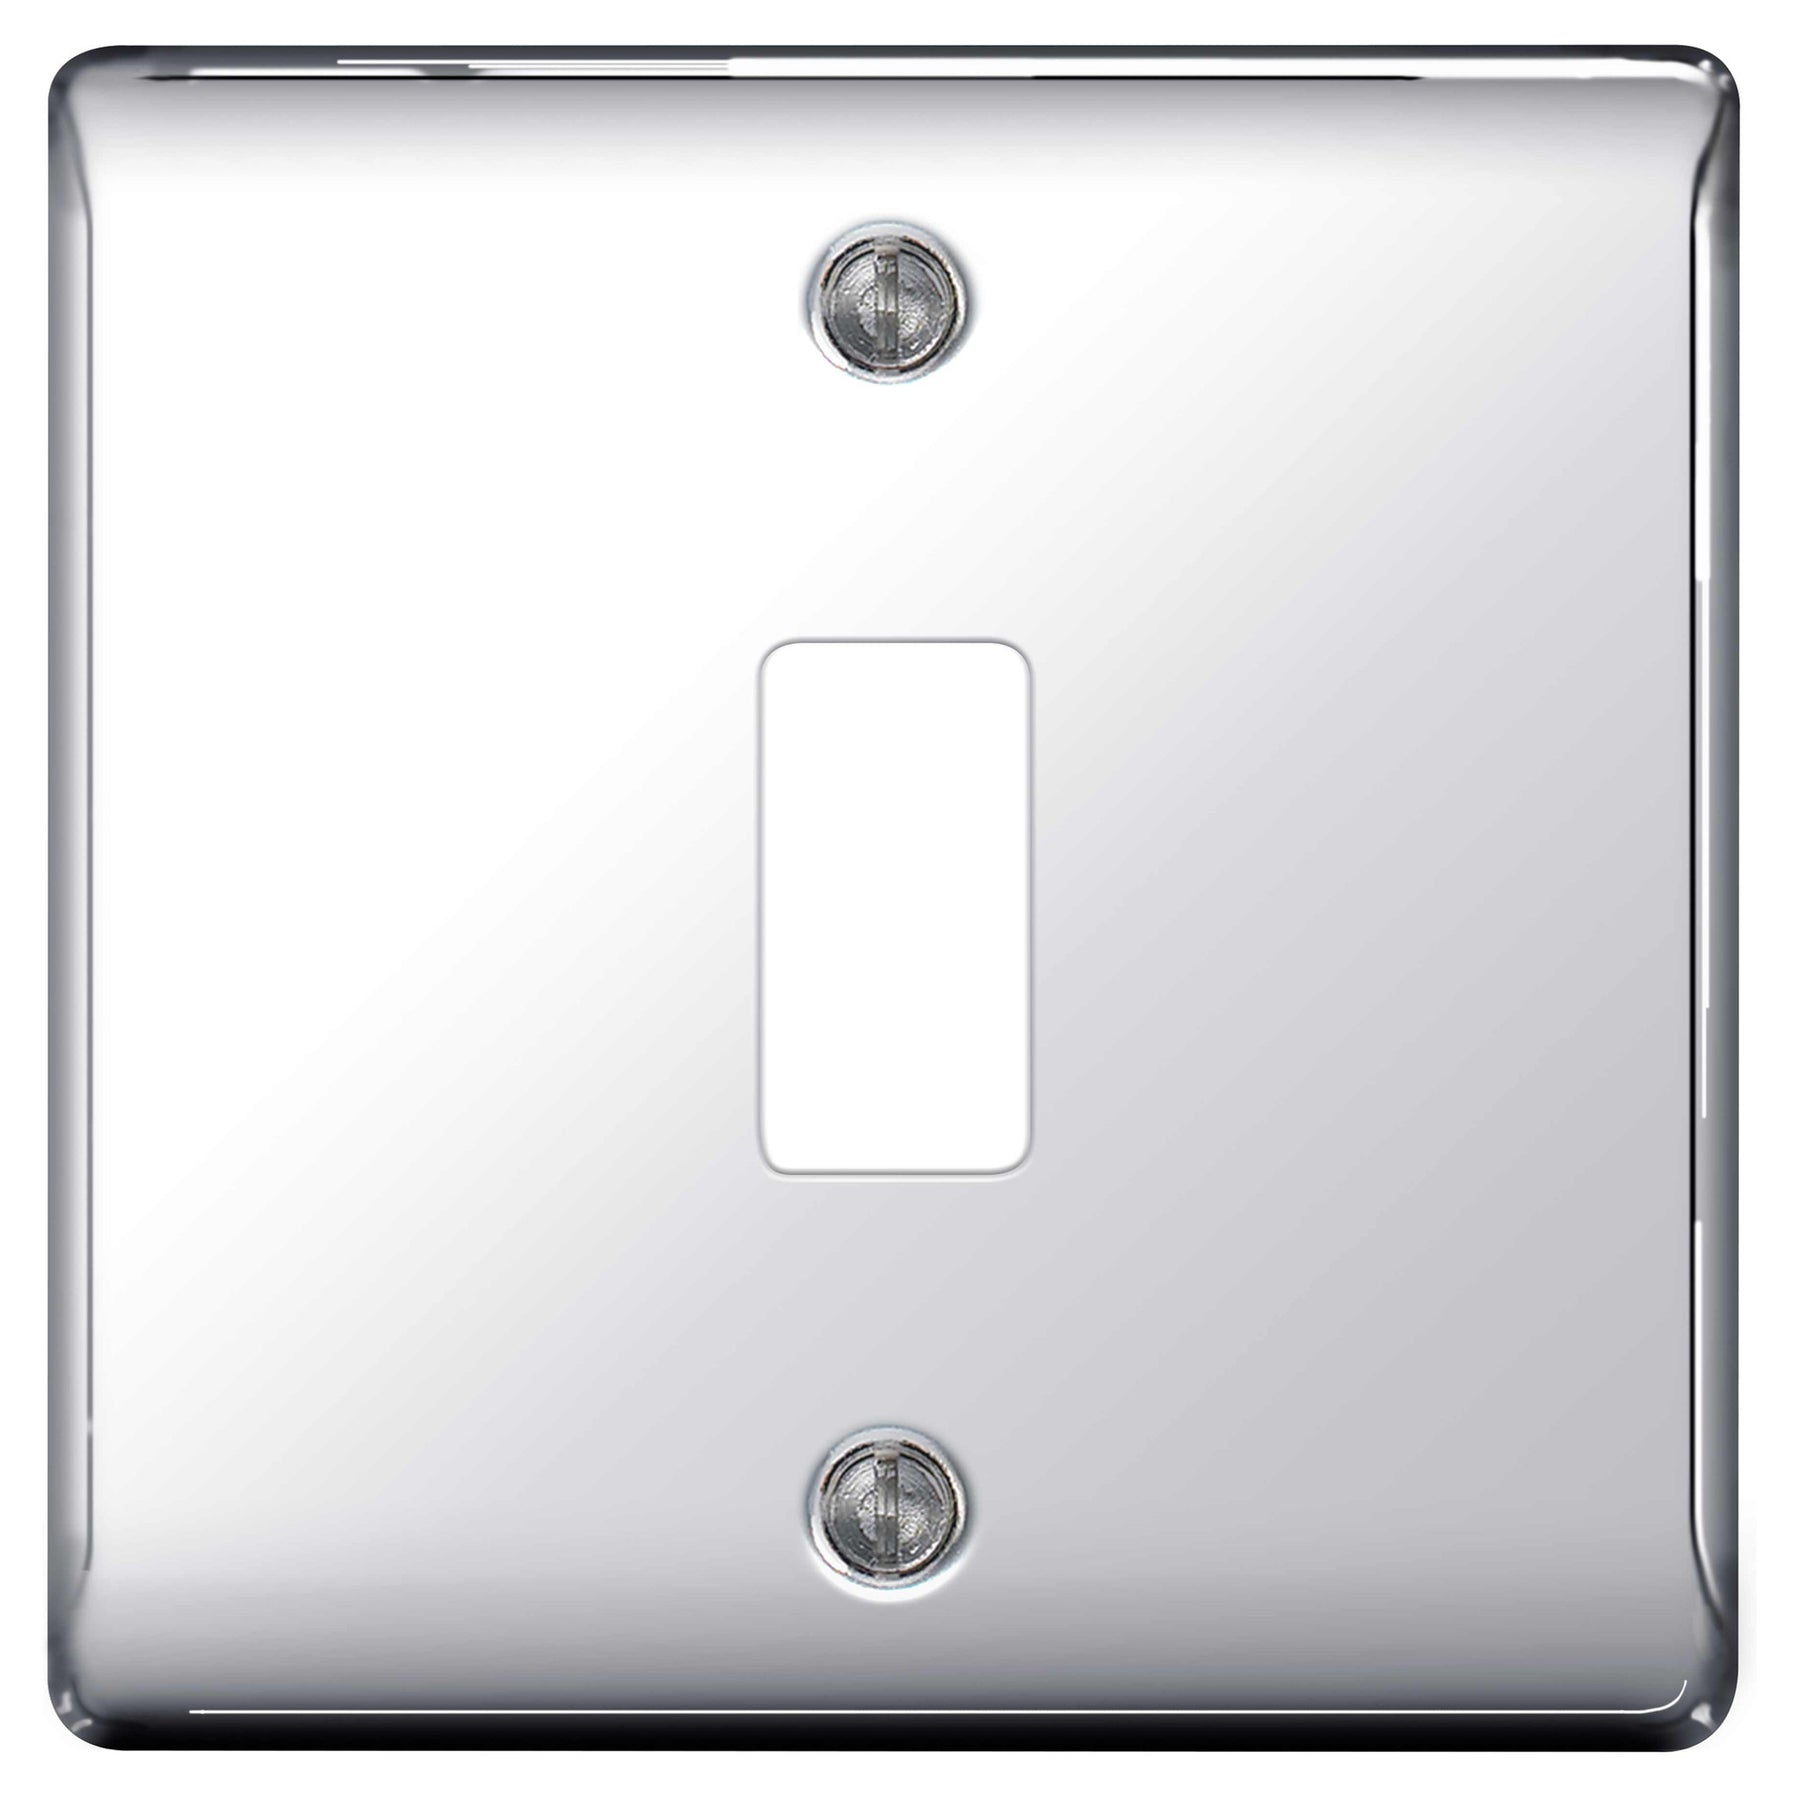 BG Nexus GNPC1 Grid Chrome 1 Gang Front Plate - BG - sparks-warehouse